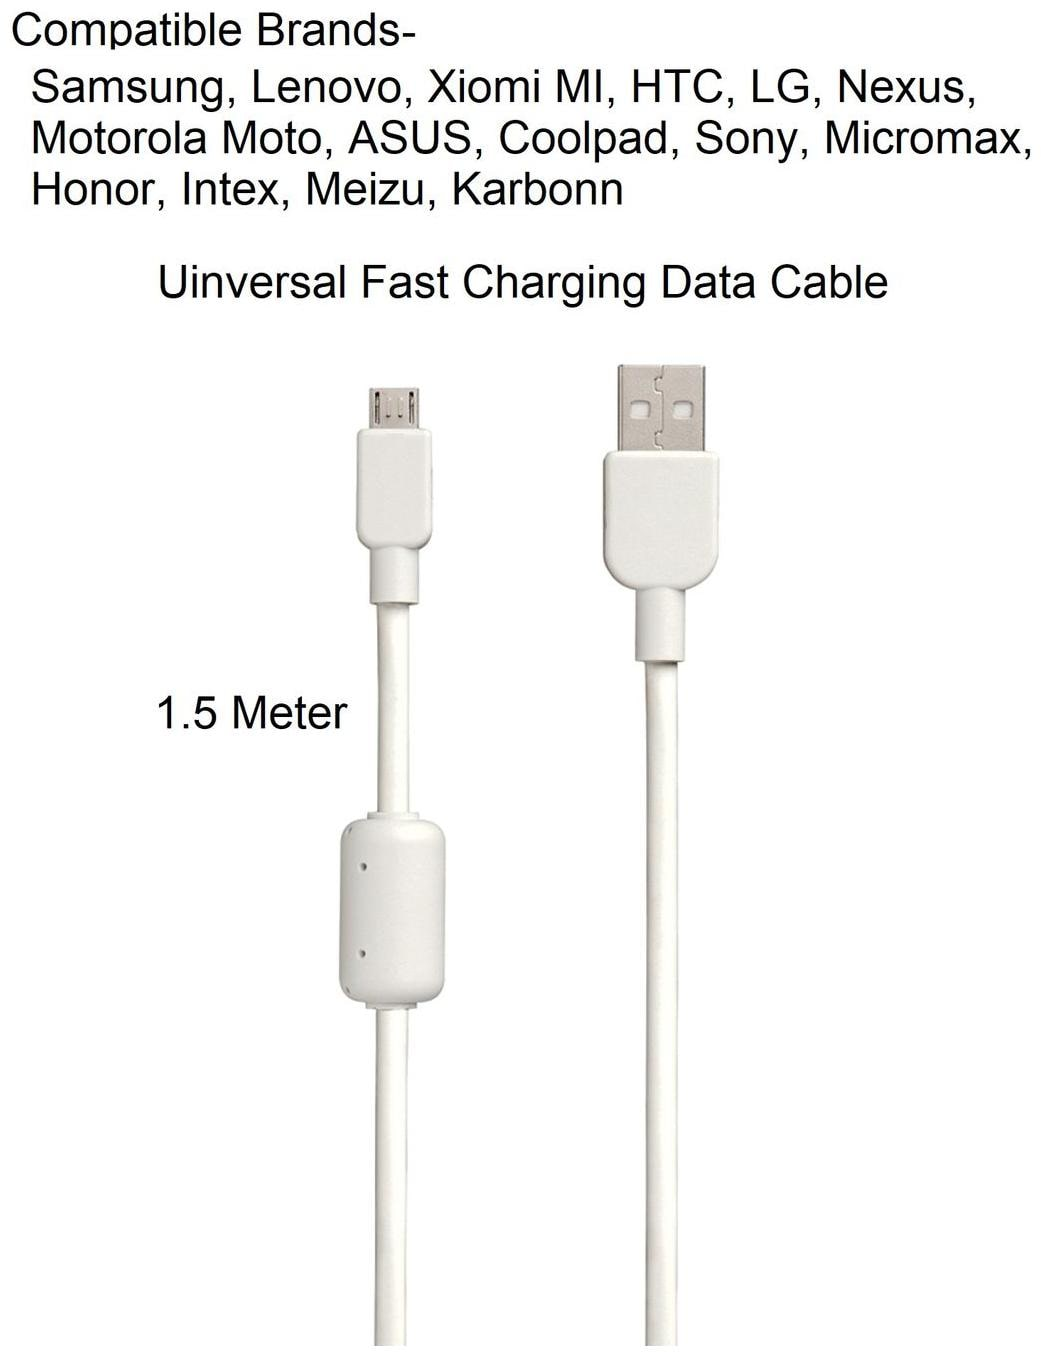 Micro USB 60MBPS Data Transfer, Durable, High Speed Micro USB Data Cable By Sami